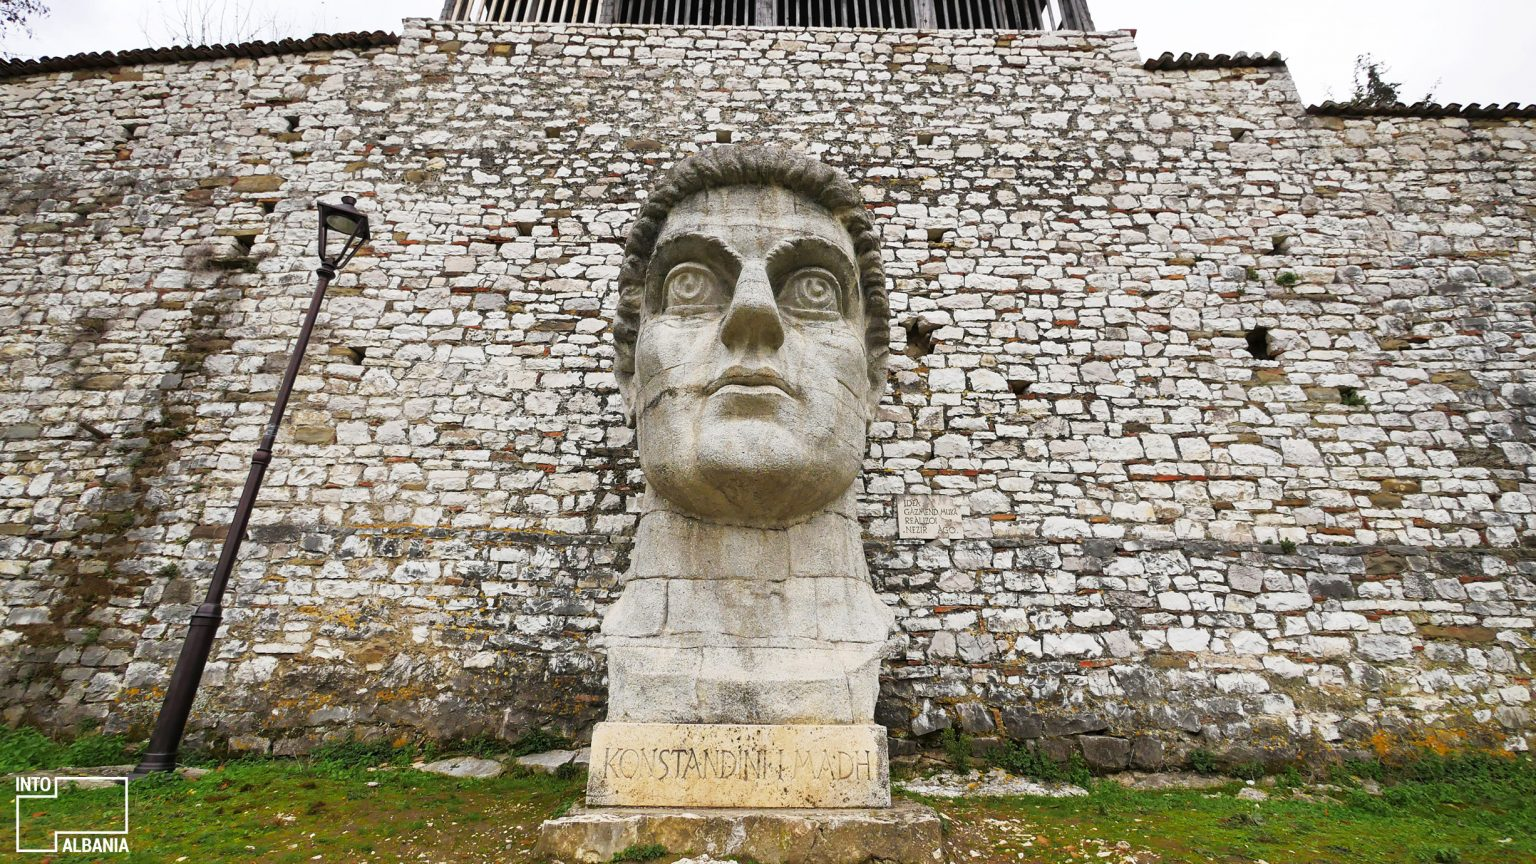 Statue of Emperor Constantine in Berat Castle. Photo by IntoAlbania